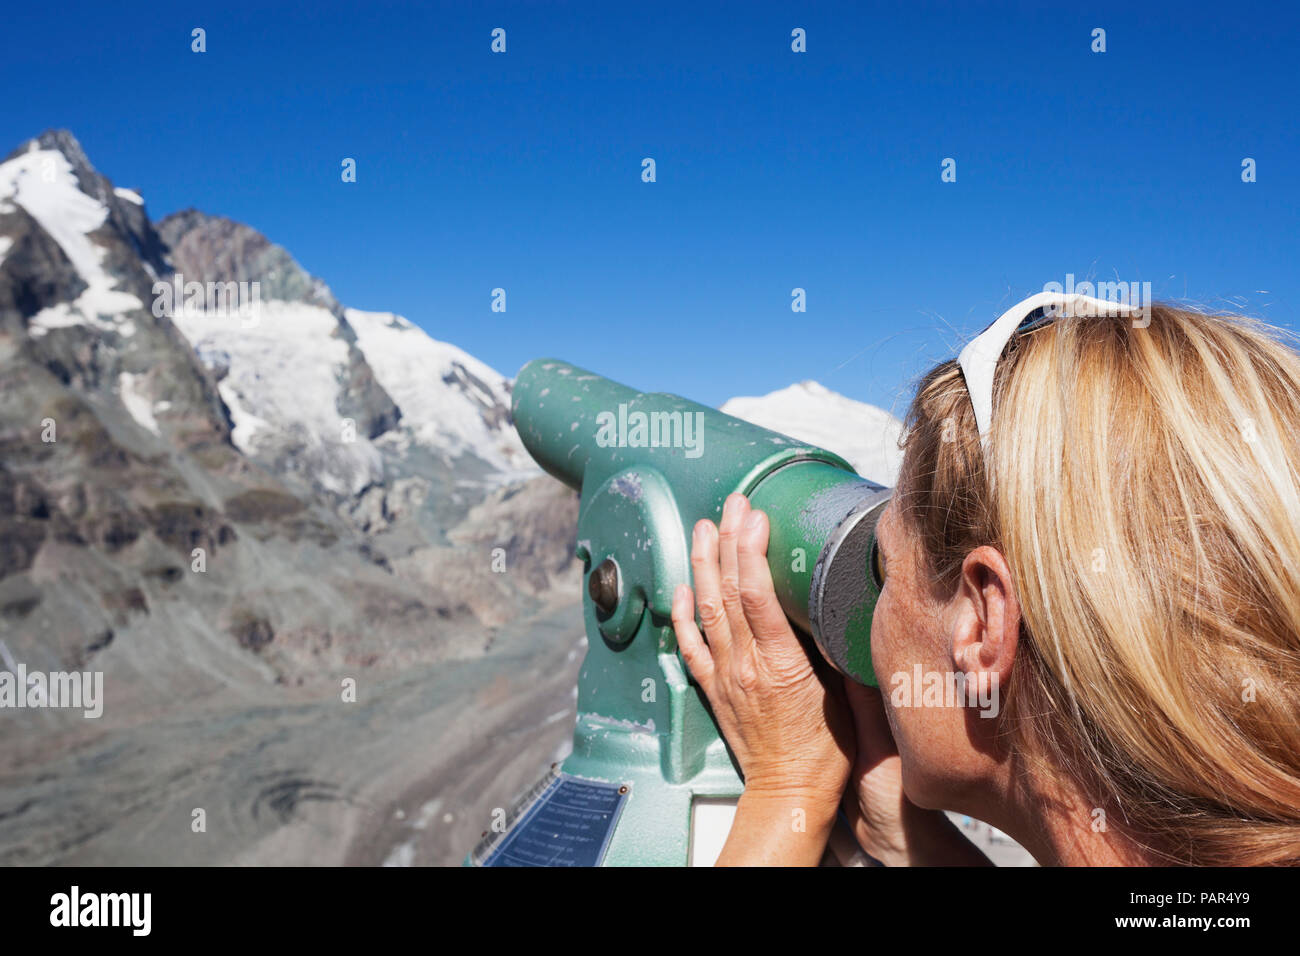 Austria, Carinthia, woman looking through binocular pointing at Grossglockner peak and Pasterze glacier, view from Kaiser-Franz-Josefs-Hoehe - Stock Image